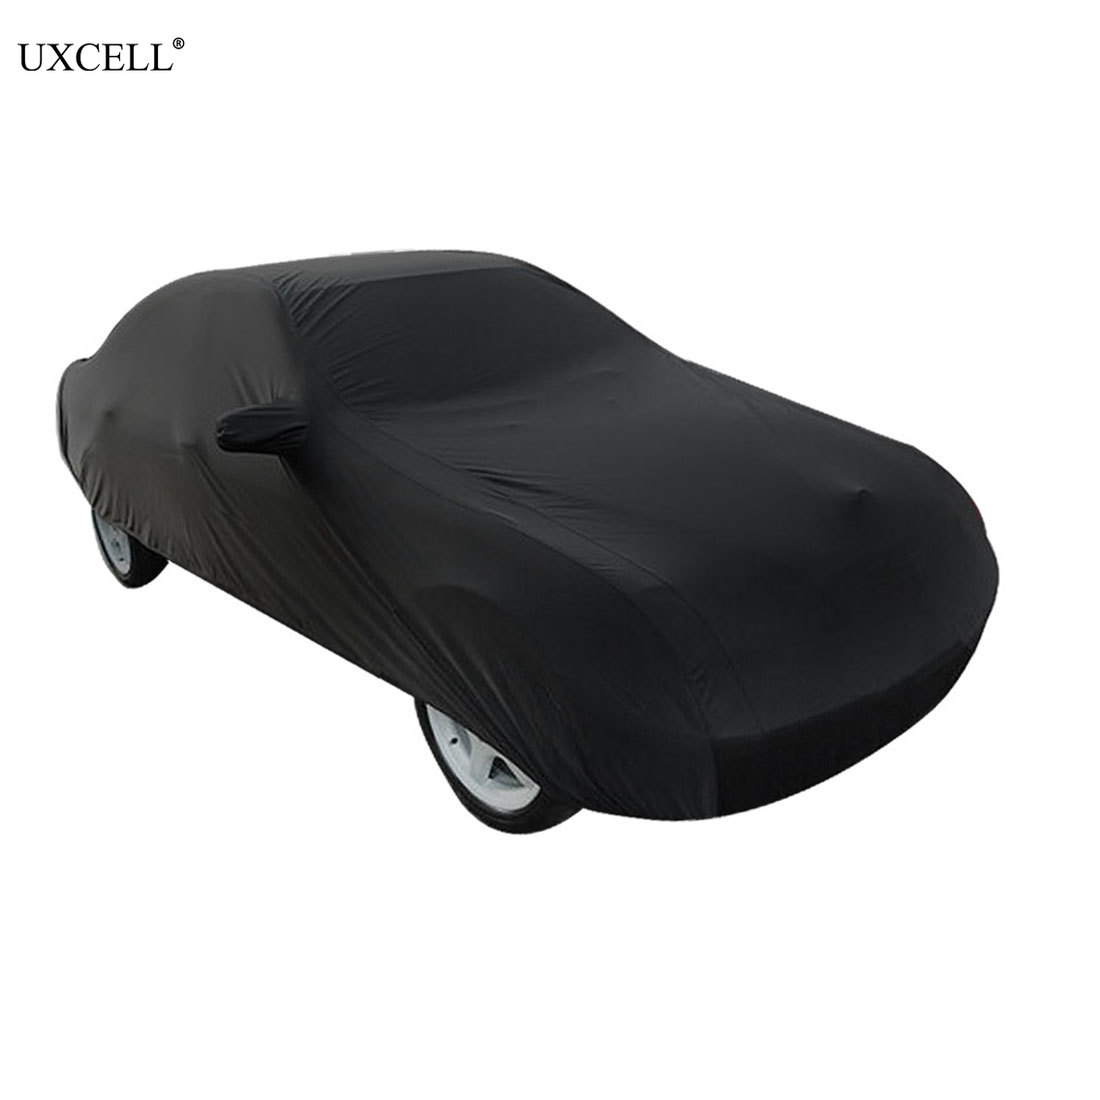 Uxcell Universal Black Waterproof Full Car Covers Snow Ice Dust Sun UV Protection Outdoor Protector COVERS For CarUxcell Universal Black Waterproof Full Car Covers Snow Ice Dust Sun UV Protection Outdoor Protector COVERS For Car